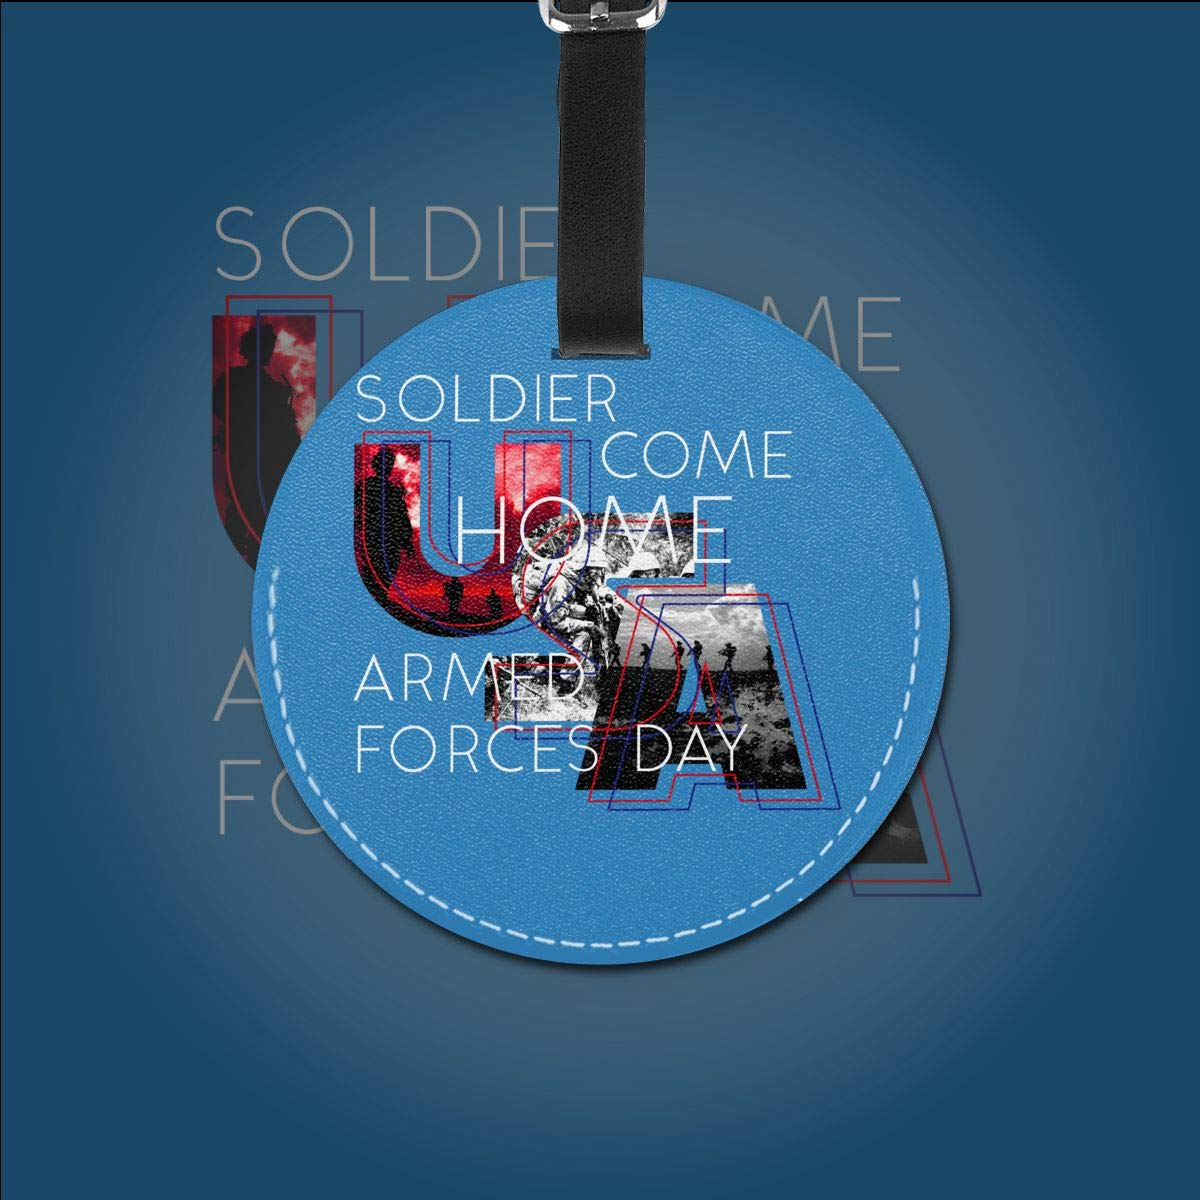 Soldier Come Home Armed Forces Day Pu Leather Double Sides Print Round Luggage Tag Mutilple Packs 1pcs,2pcs,4pcs